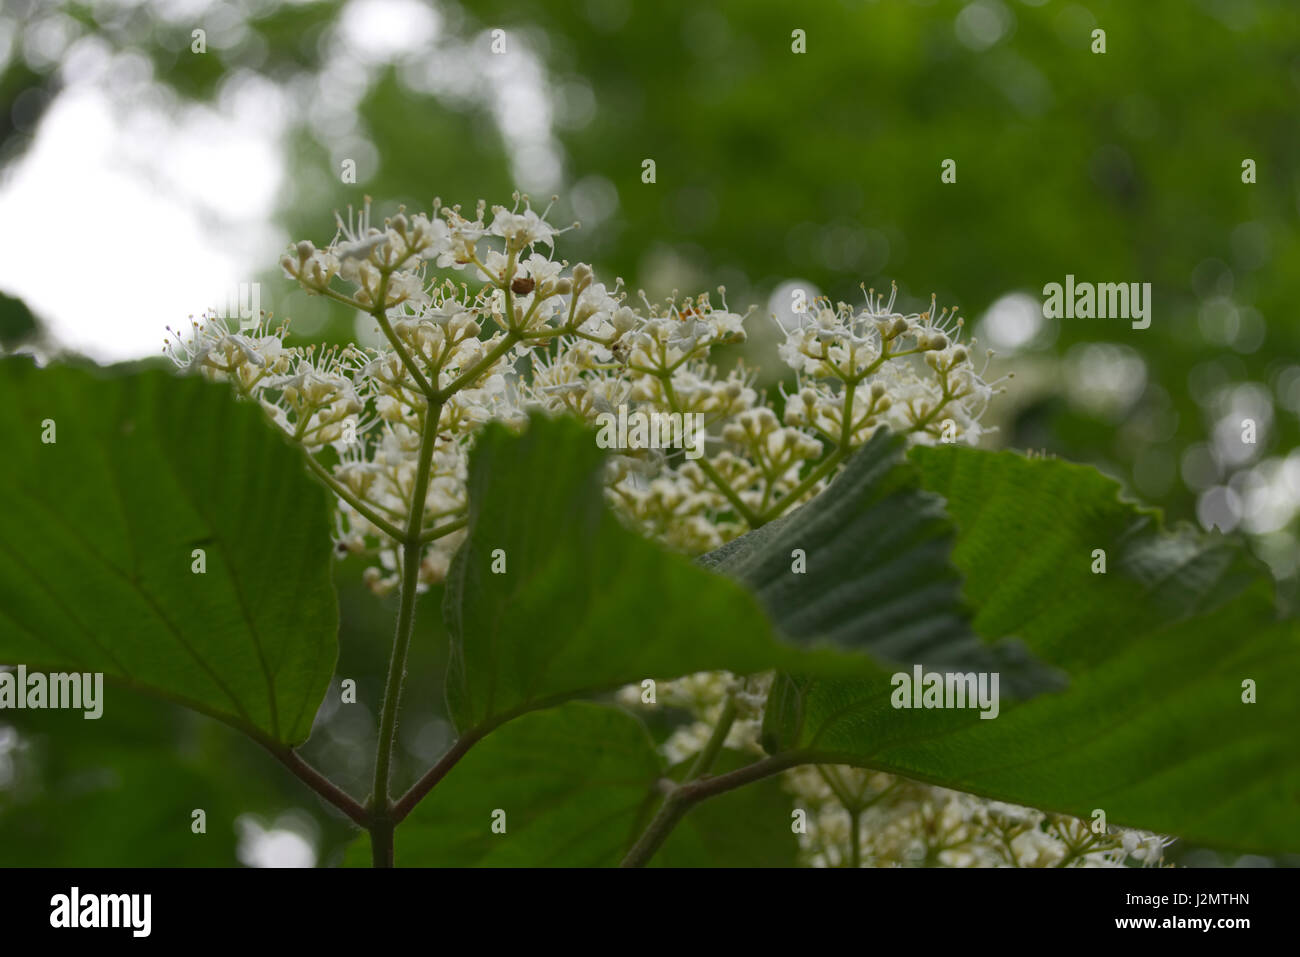 Close up photos of flowers, plants and trees - Stock Image